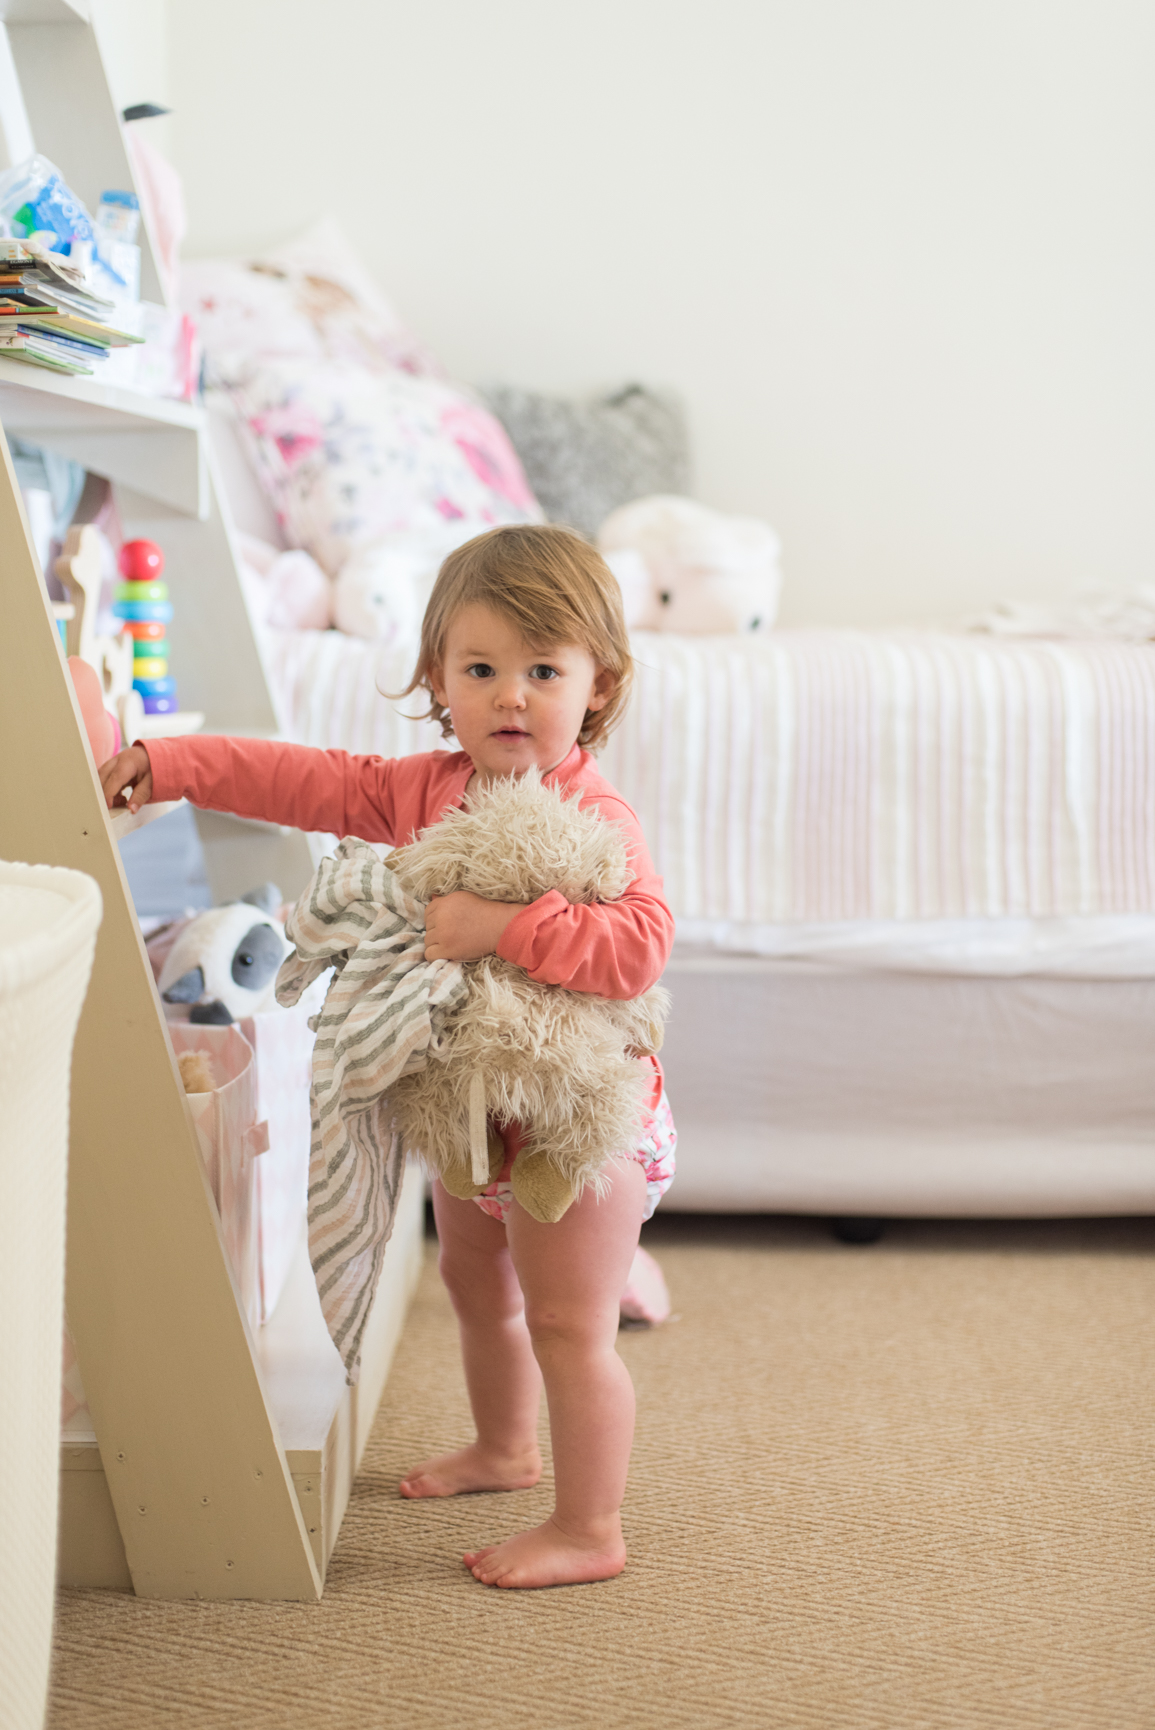 Everly Rose Toddler Bedroom CityGirlSearching Blog  (46 of 49).jpg